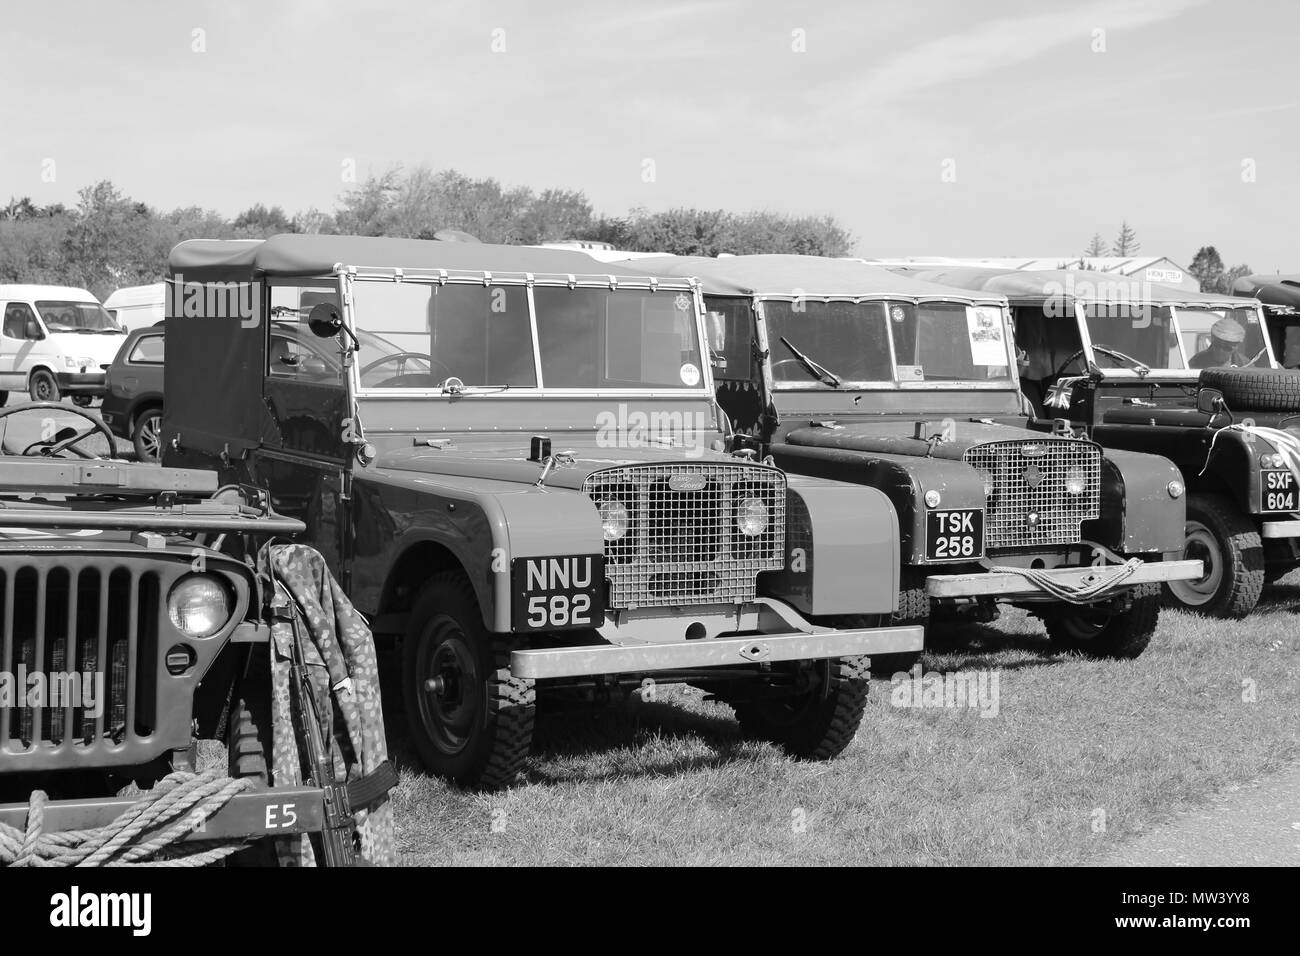 Military Vehicles Show at Llandudno, Wales - Stock Image